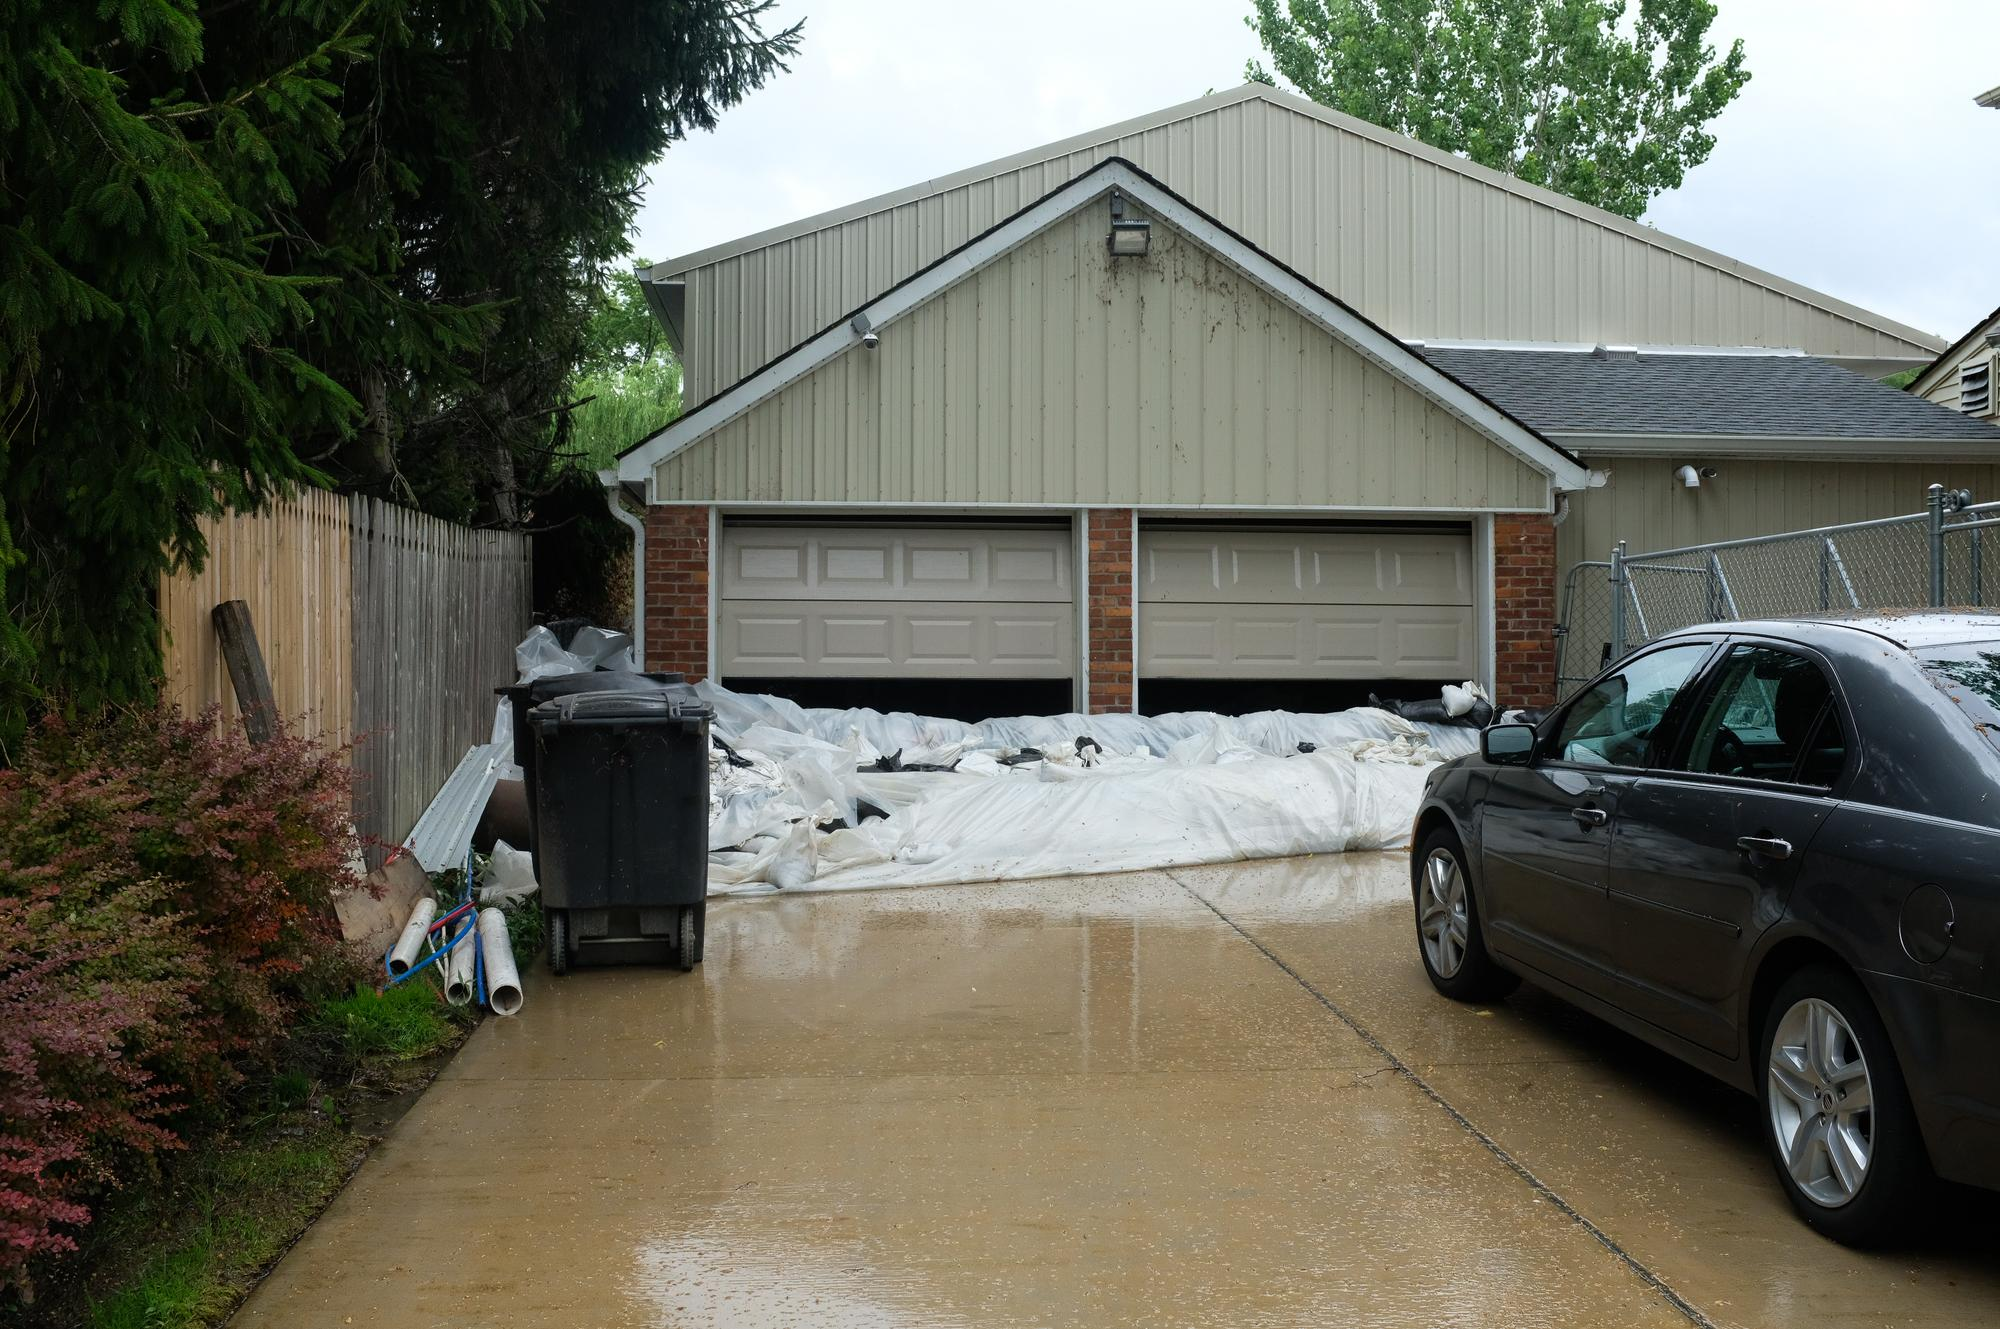 Residents say the city should do more to prevent water from getting into houses.Eli Newman